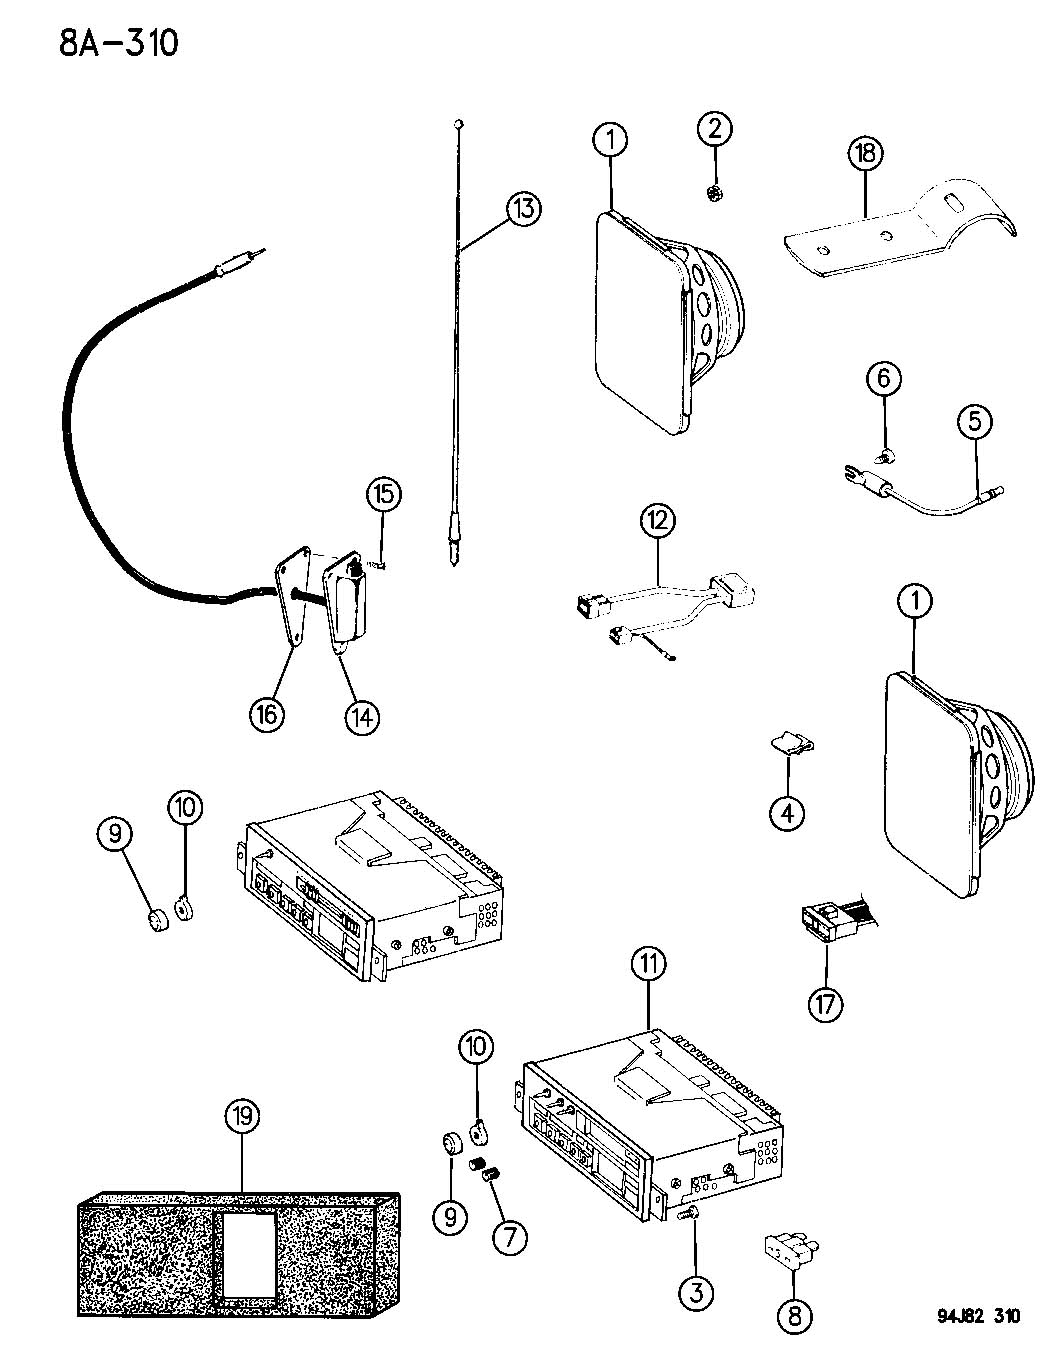 98 jeep wrangler speaker wiring diagram rotronics dual battery system radio antenna and speakers yj